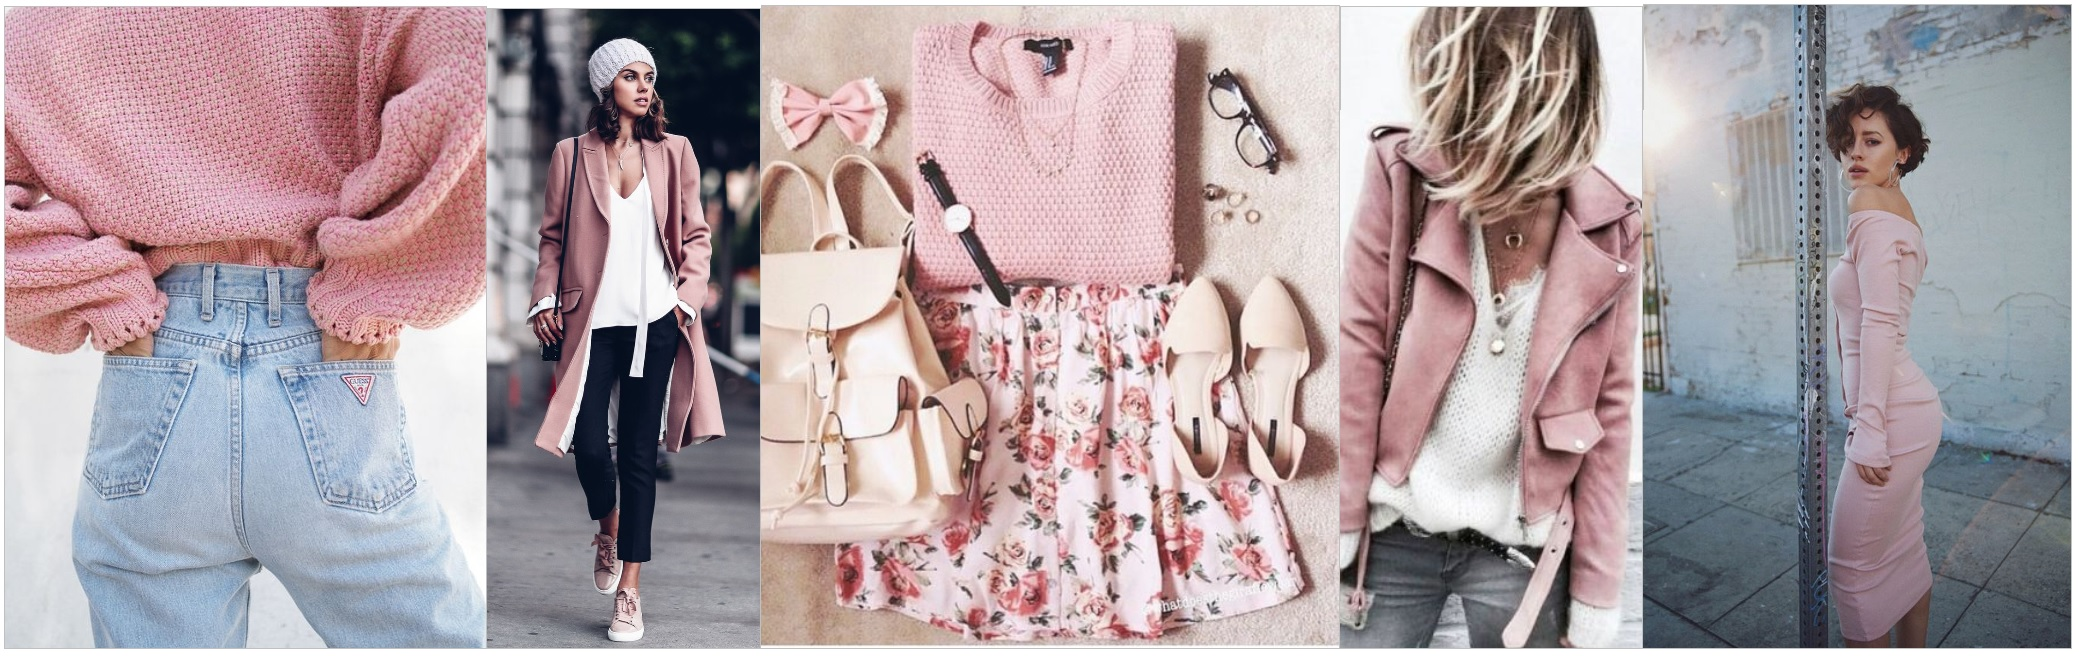 pink clothes styles